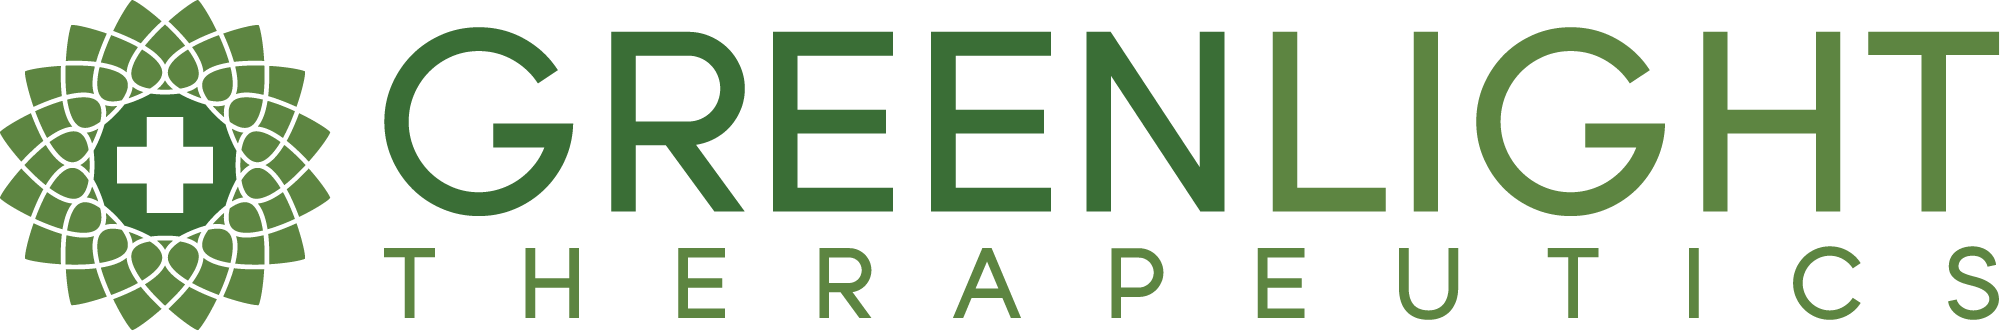 Greenlight Therapeutics - Medical Cannabis Dispensary, Maryland